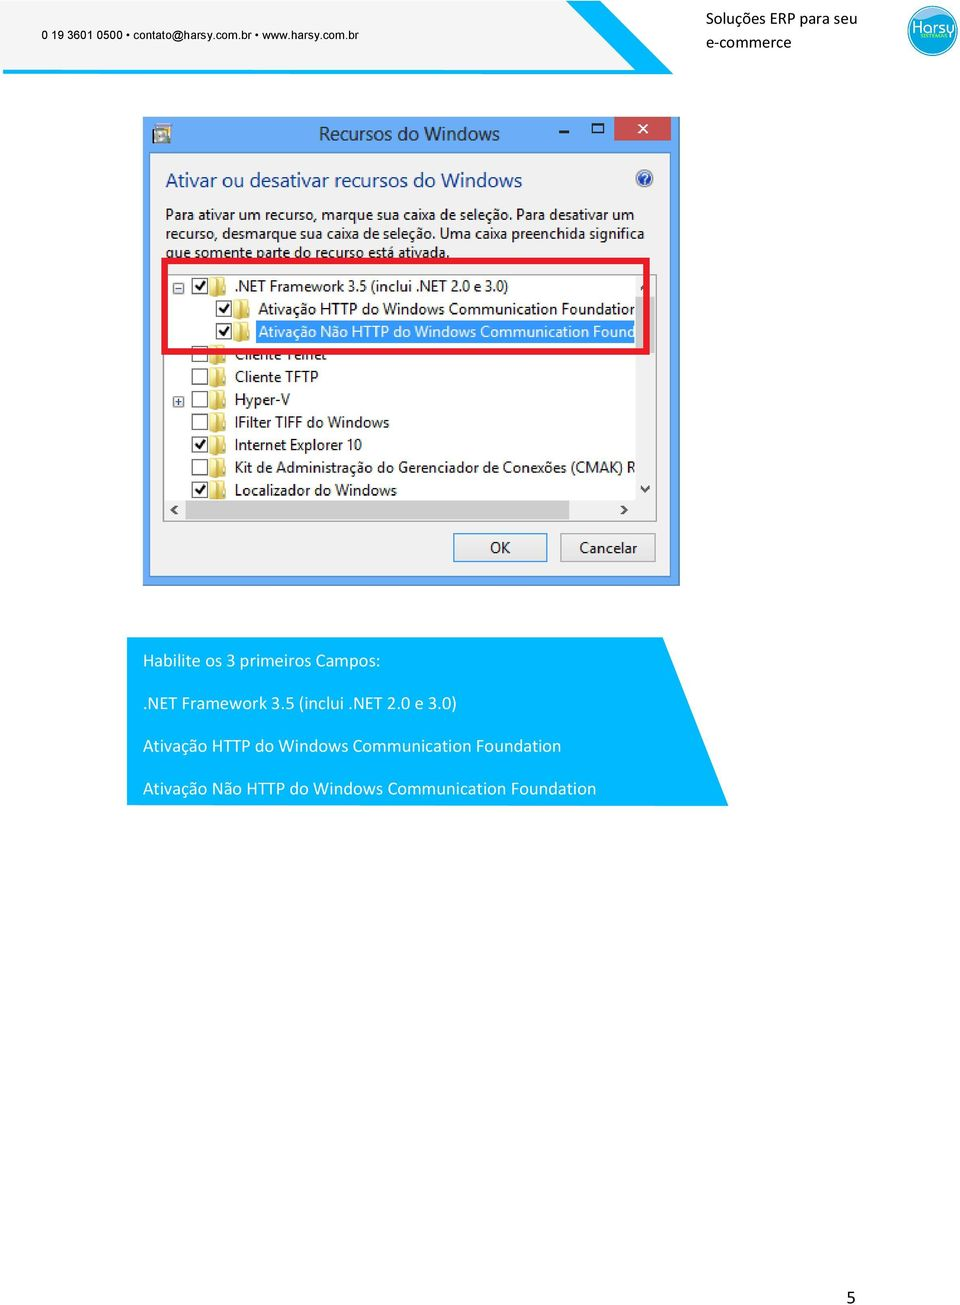 0) Ativação HTTP do Windows Communication